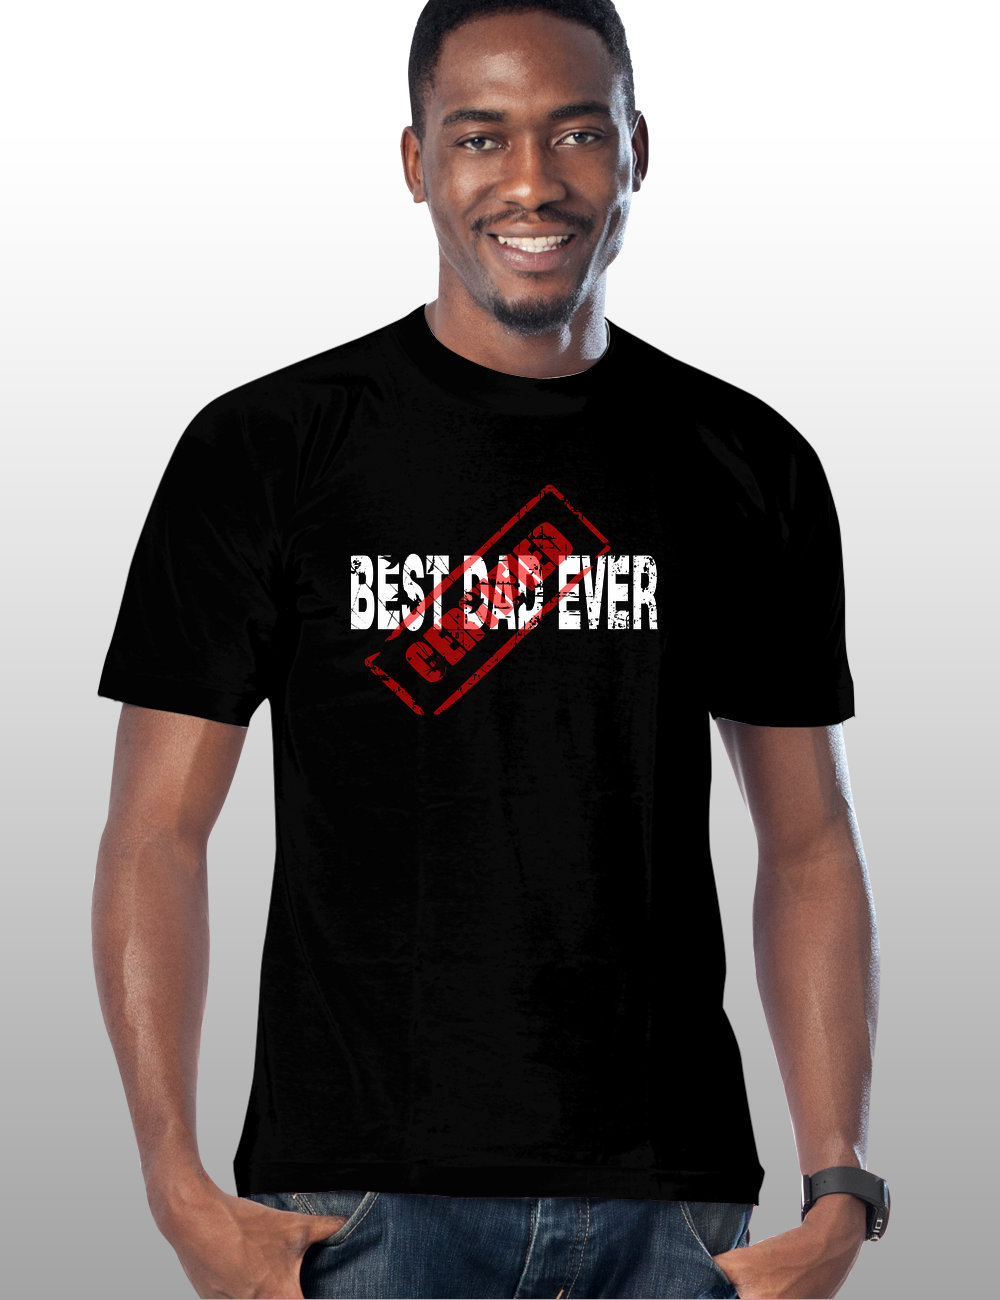 Certified Best Dad Ever Tshirt. Great gift for dad's